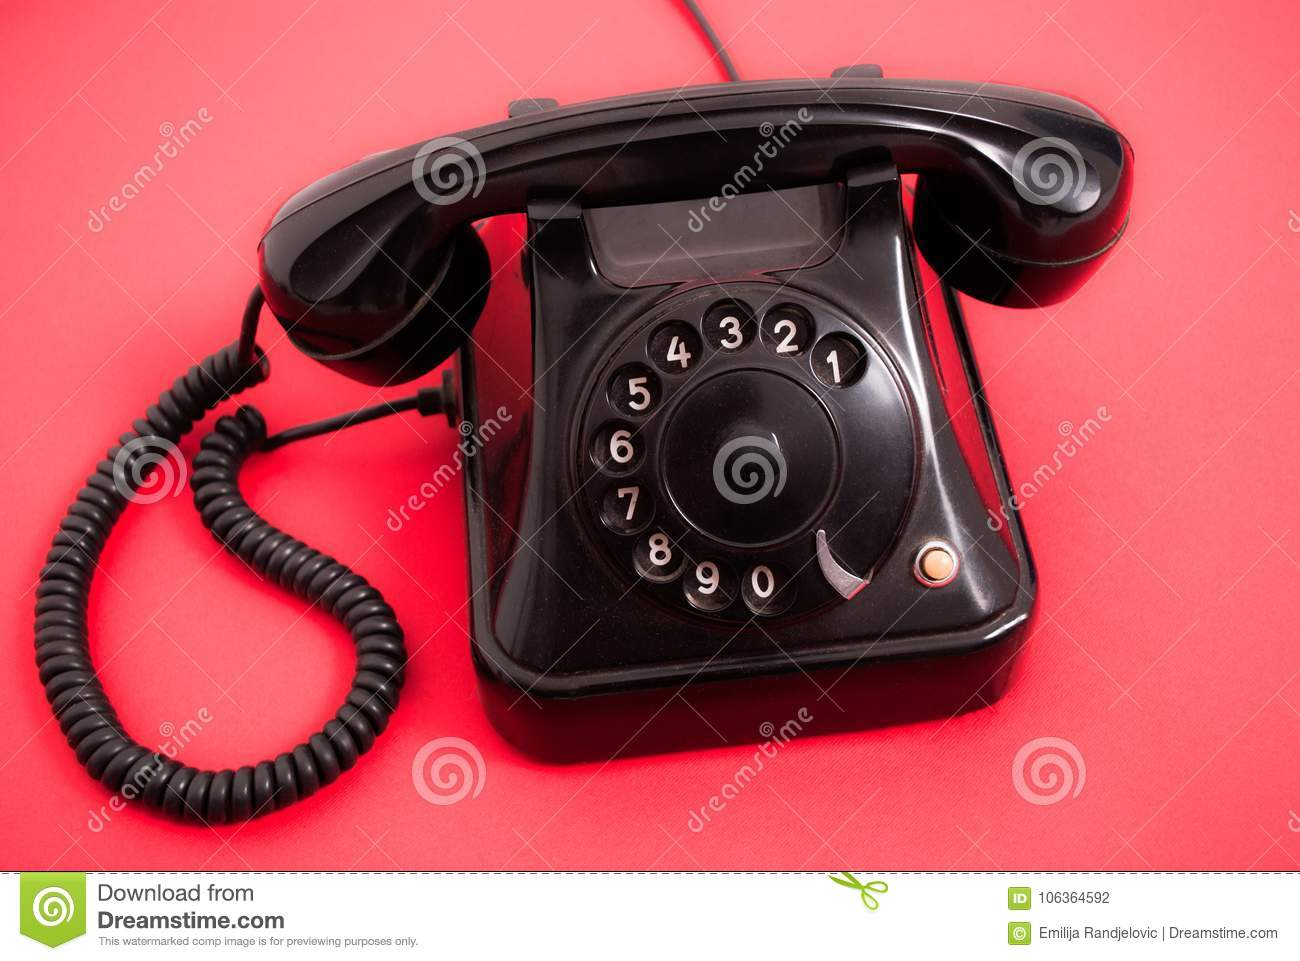 Old Phone With Dials On Red Background Stock Photo - Image